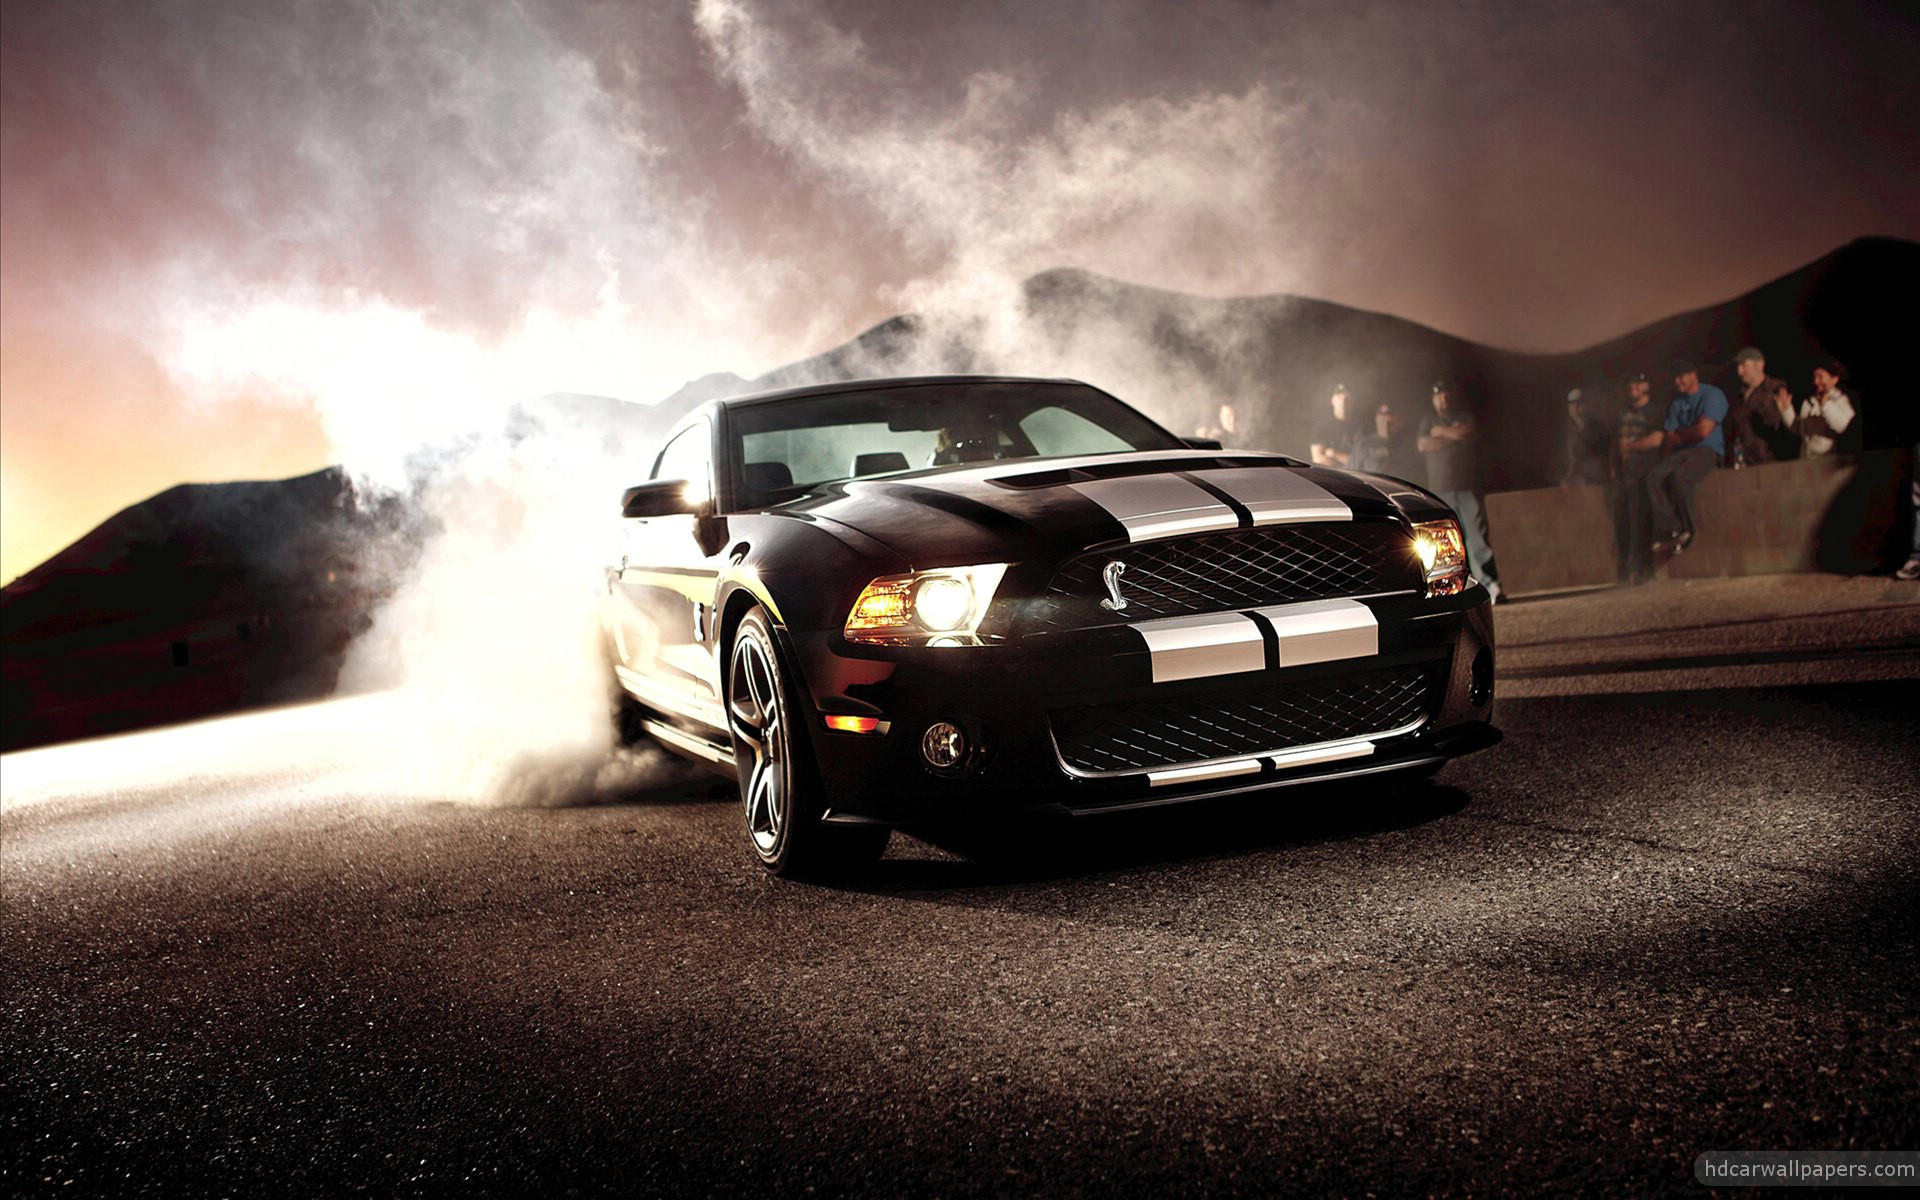 Ford Shelby Gt500 2012 Wallpaper Hd Car Wallpapers Id 2272